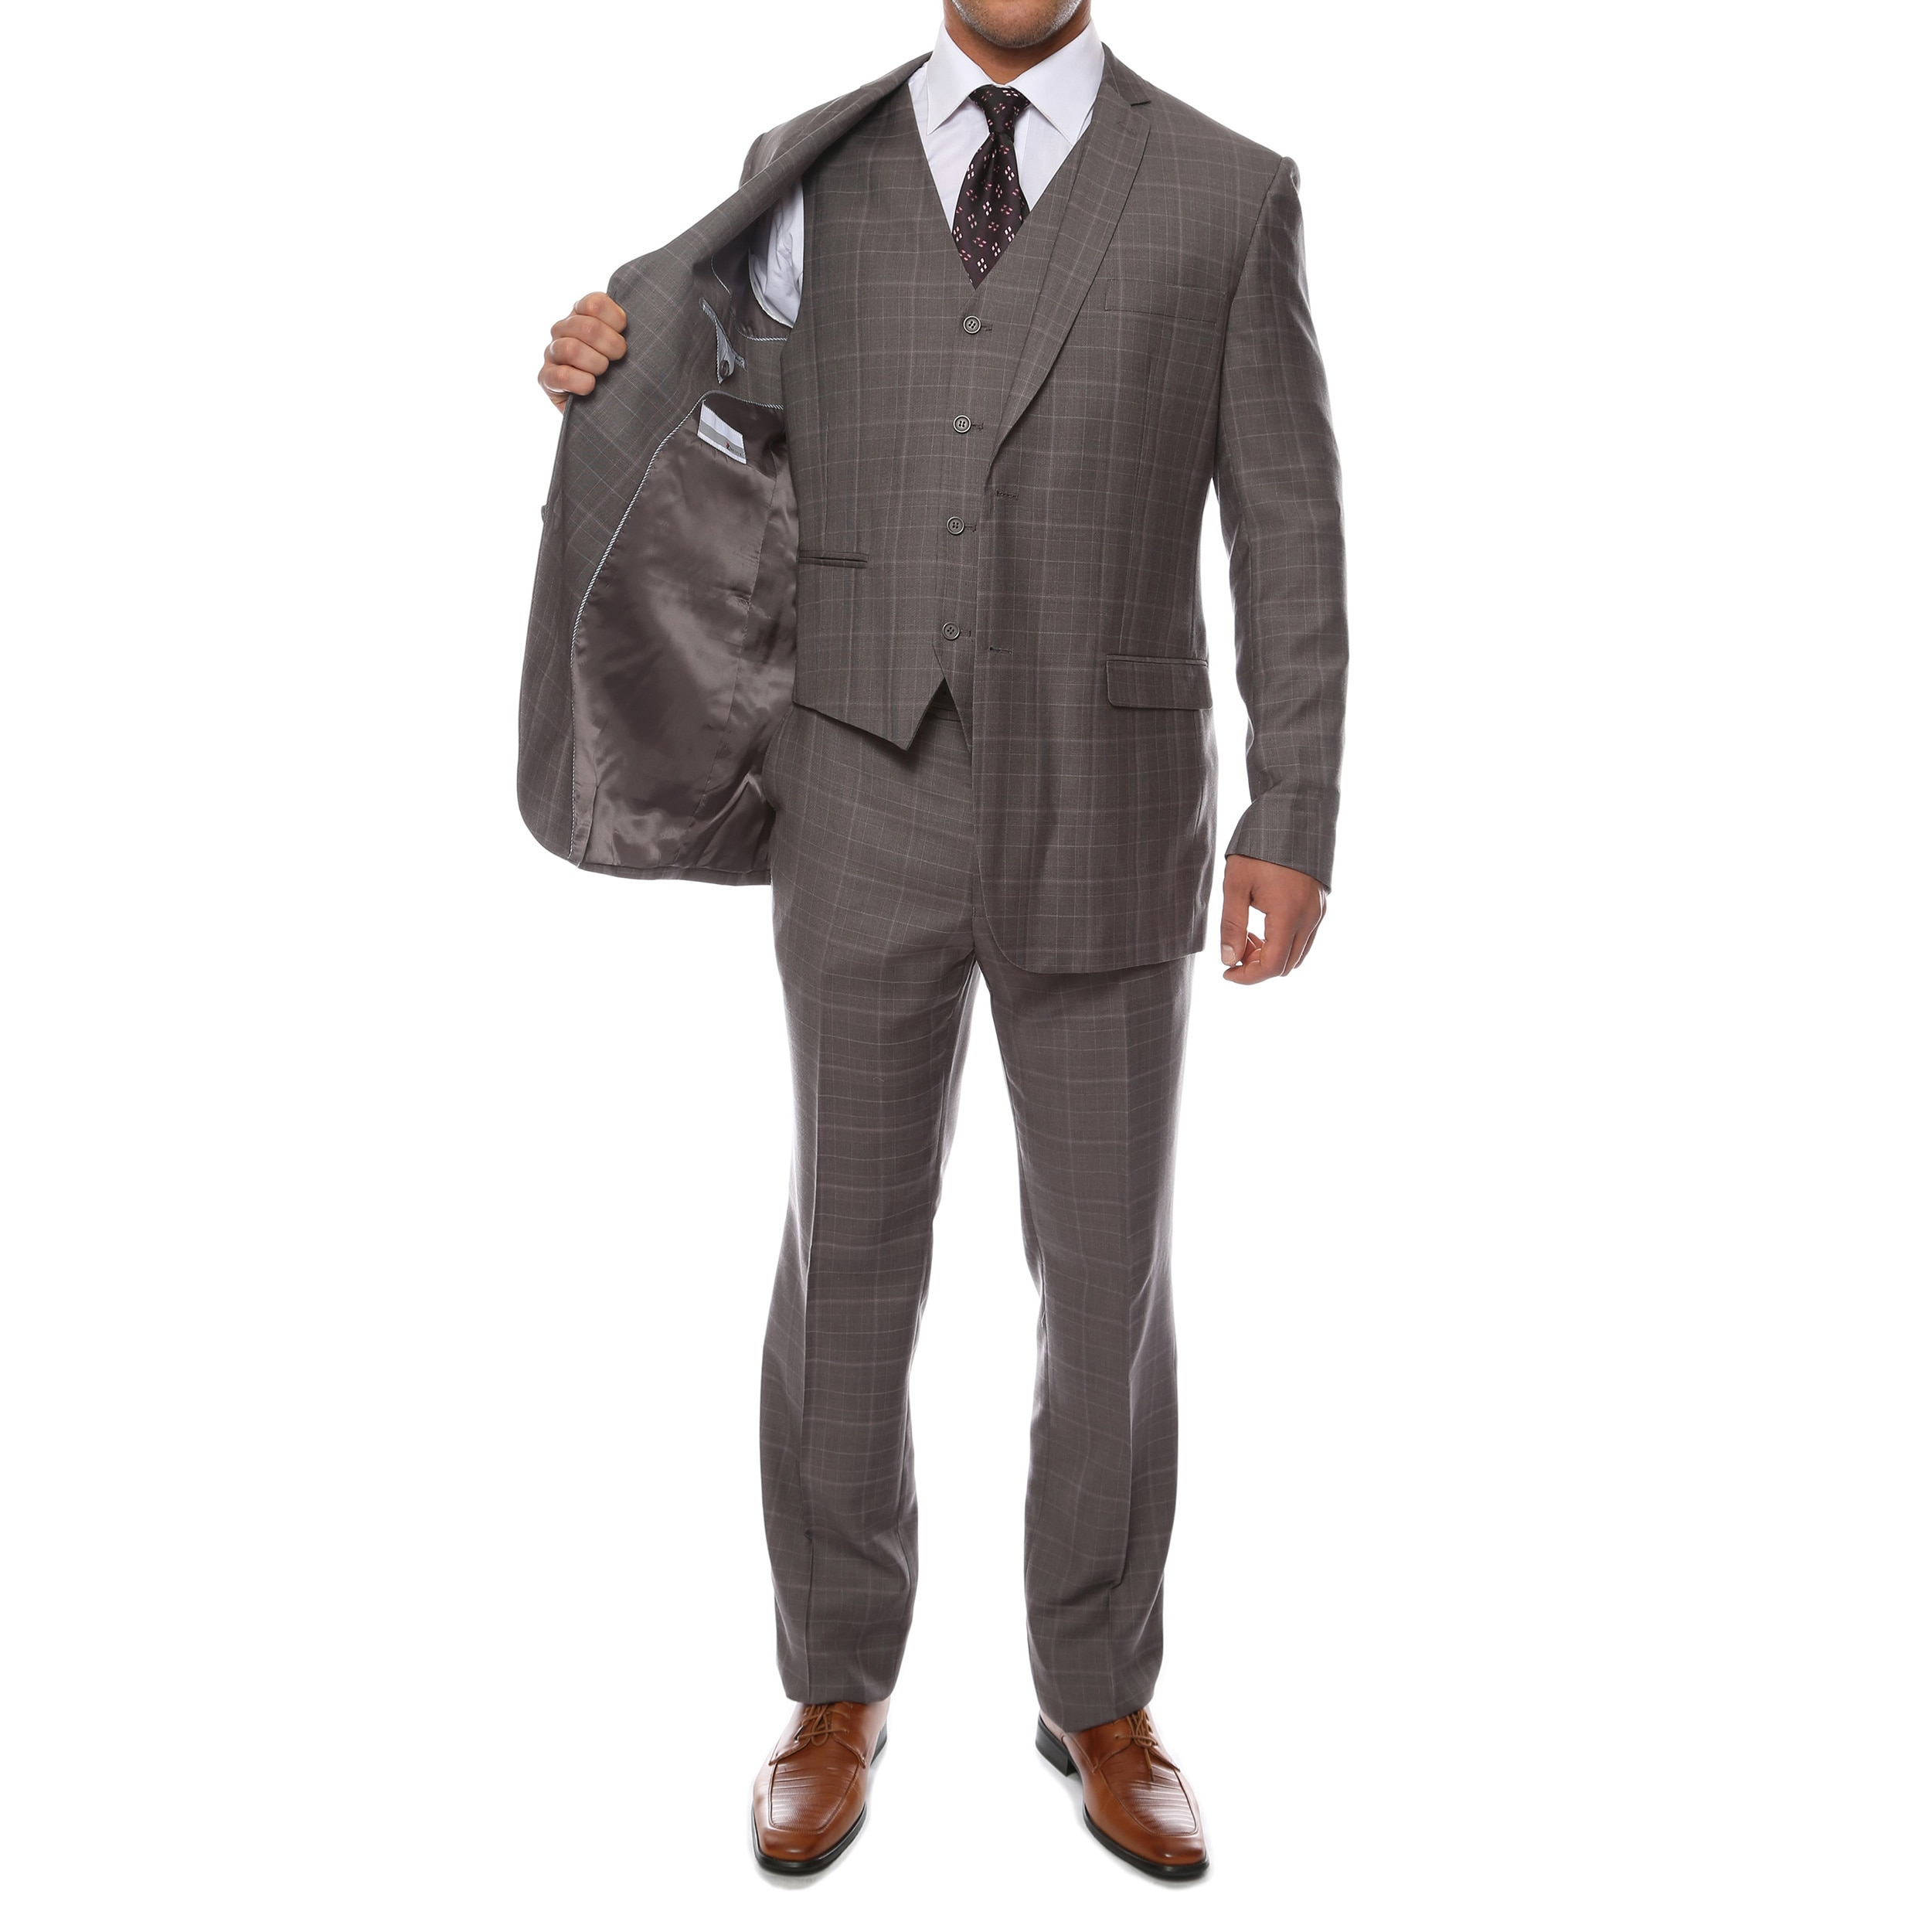 8b3c3d2a Shop Zonettie by Ferrecci Men's Custom Slim Fit Charcoal Grey Plaid 3-piece  Vested Suit - Free Shipping Today - Overstock - 9060788